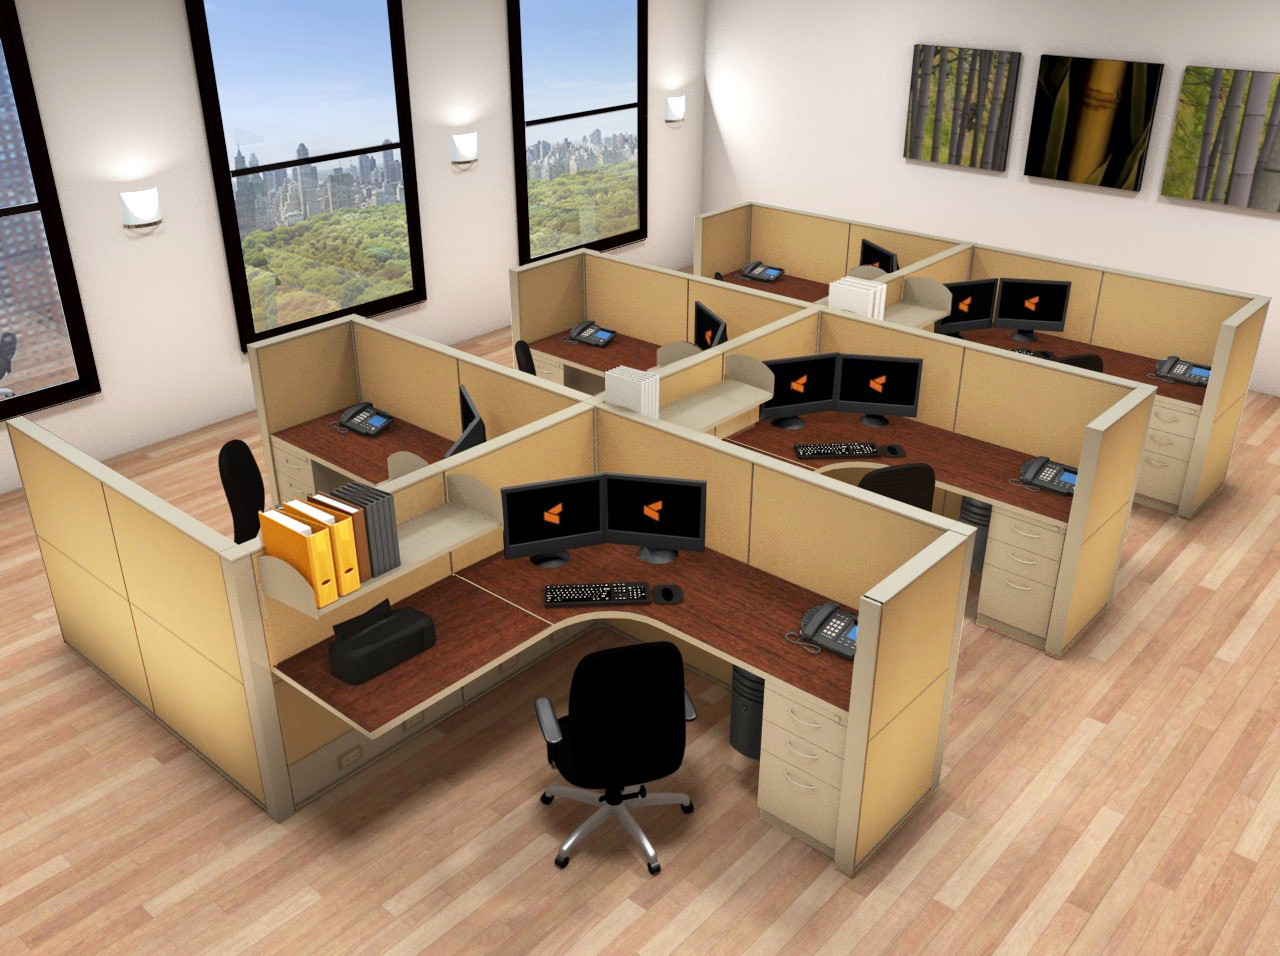 ergonomically correct chair home theater bean bag chairs office workstation furniture - cubicle workstations systems